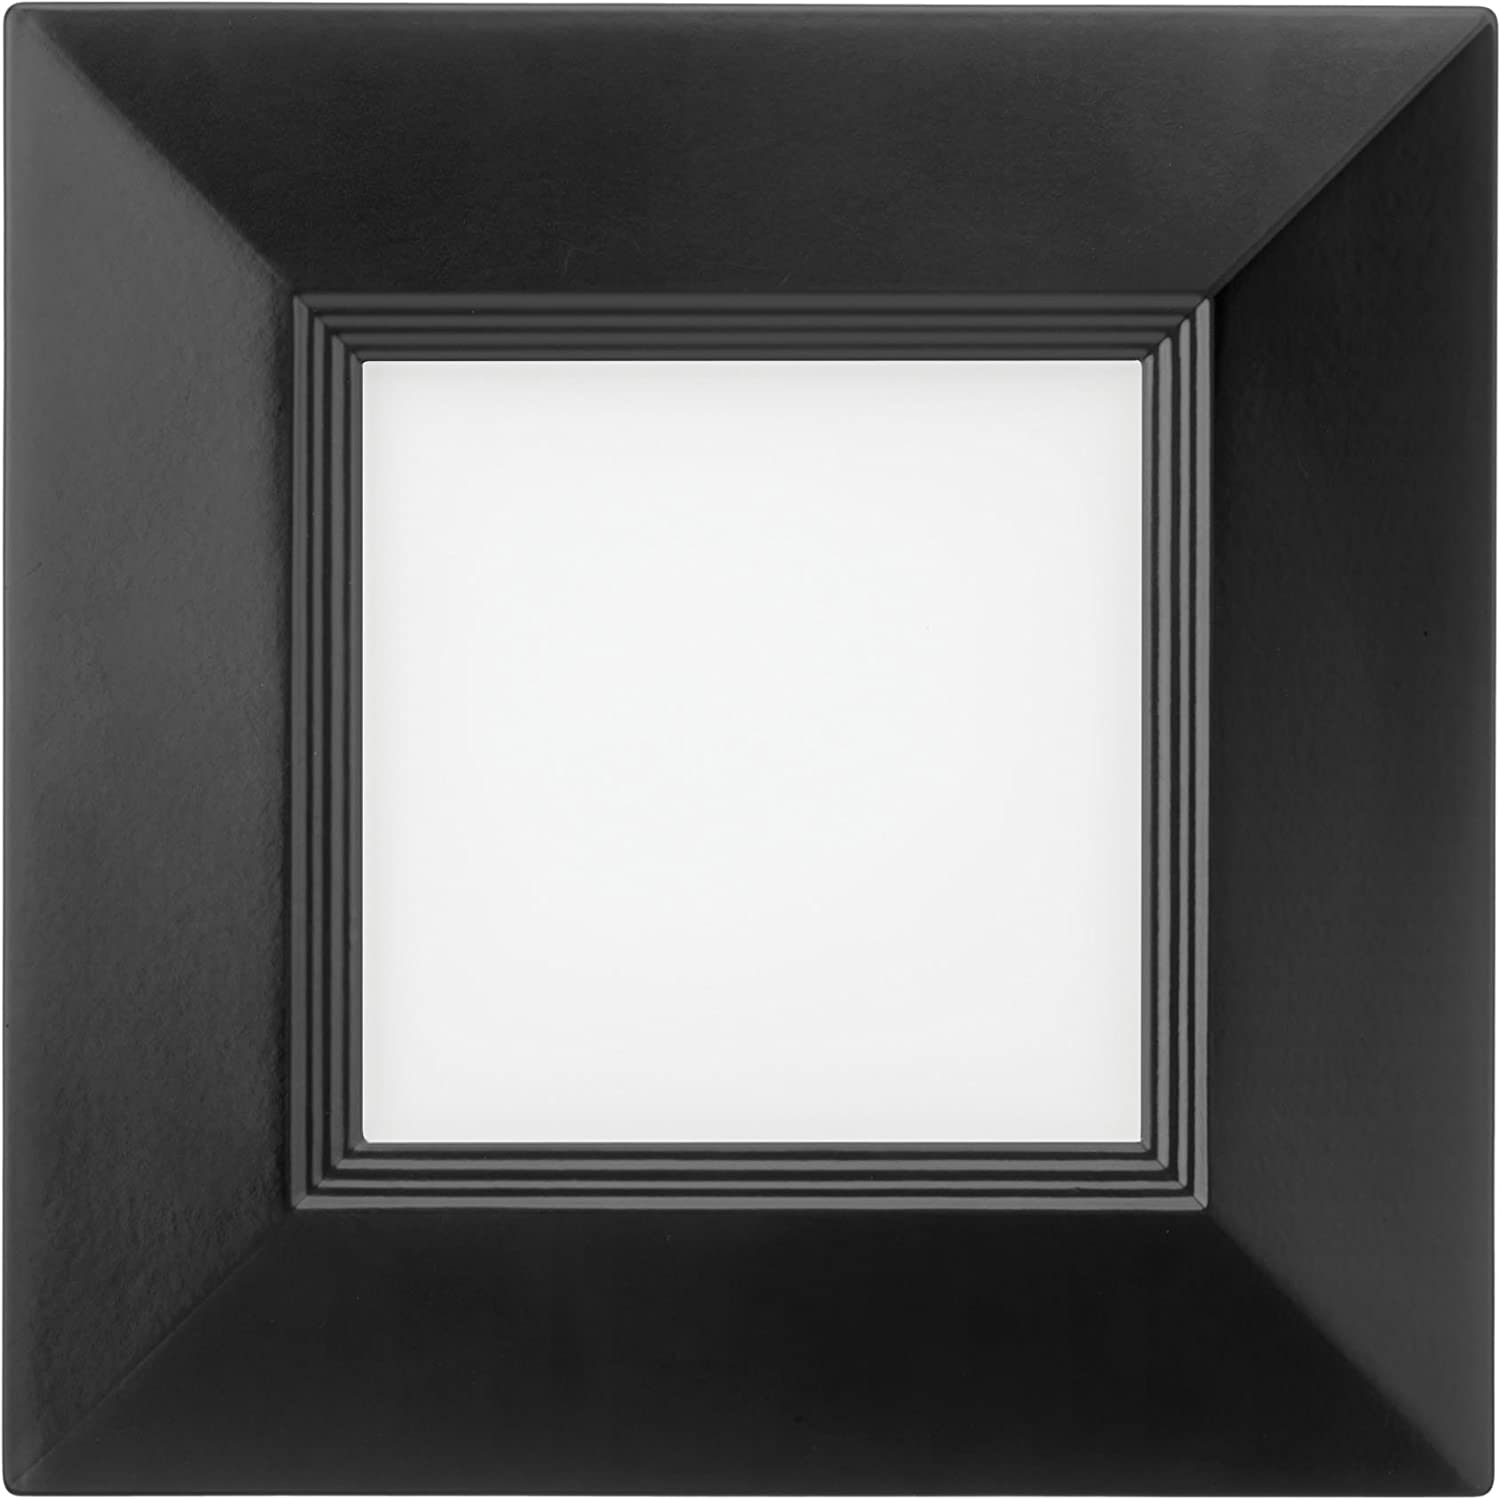 Matte Black 4000K Cool White Lithonia Lighting WF4 SQ B LED 40K MB M6 10.3W Ultra Thin Square Dimmable LED Recessed Ceiling Light with Baffle Trim